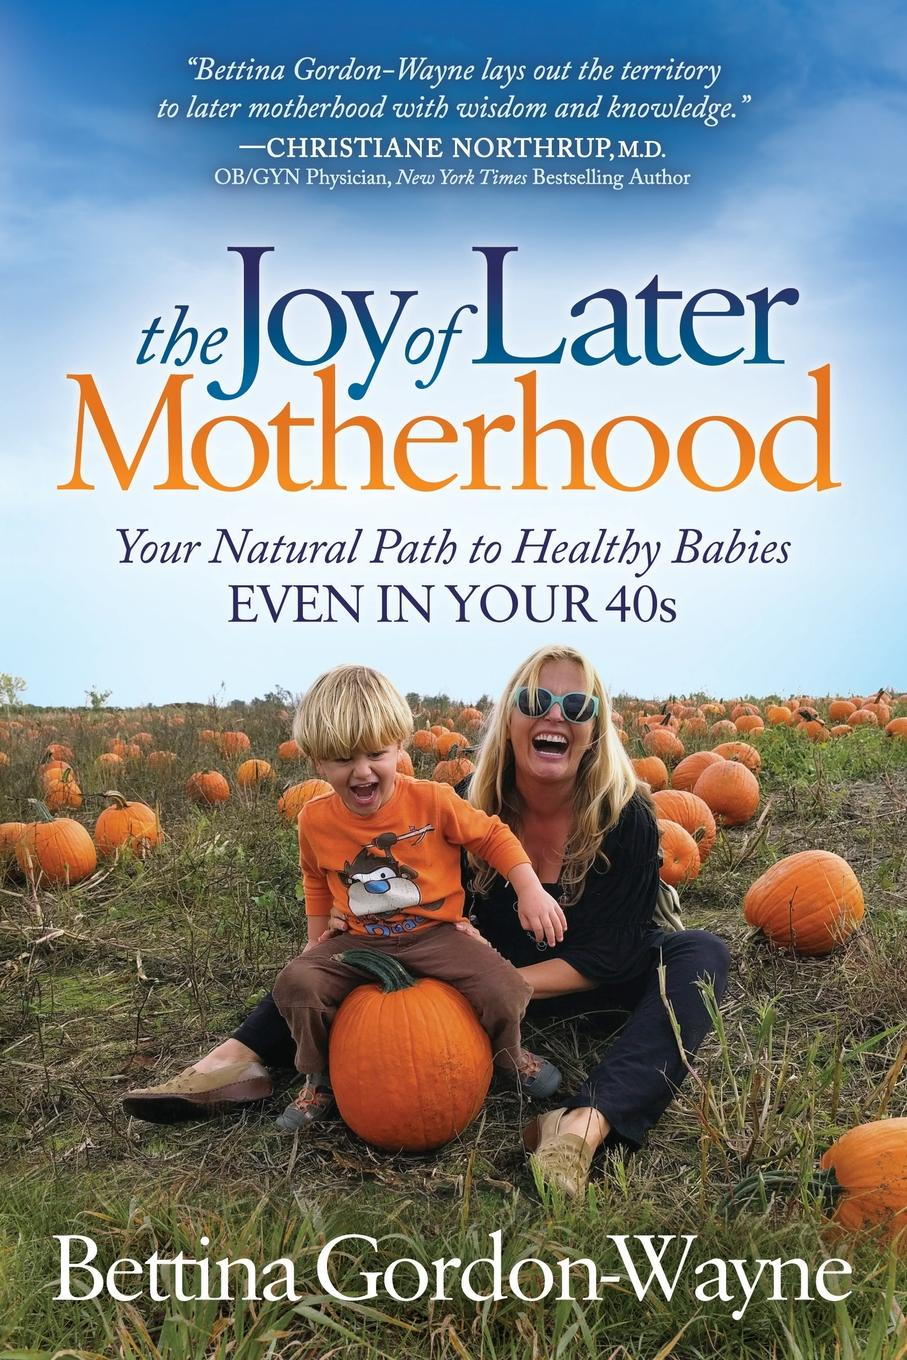 Bettina Gordon The Joy of Later Motherhood. Your Natural Path to Healthy Babies Even in Your 40.s motherhood